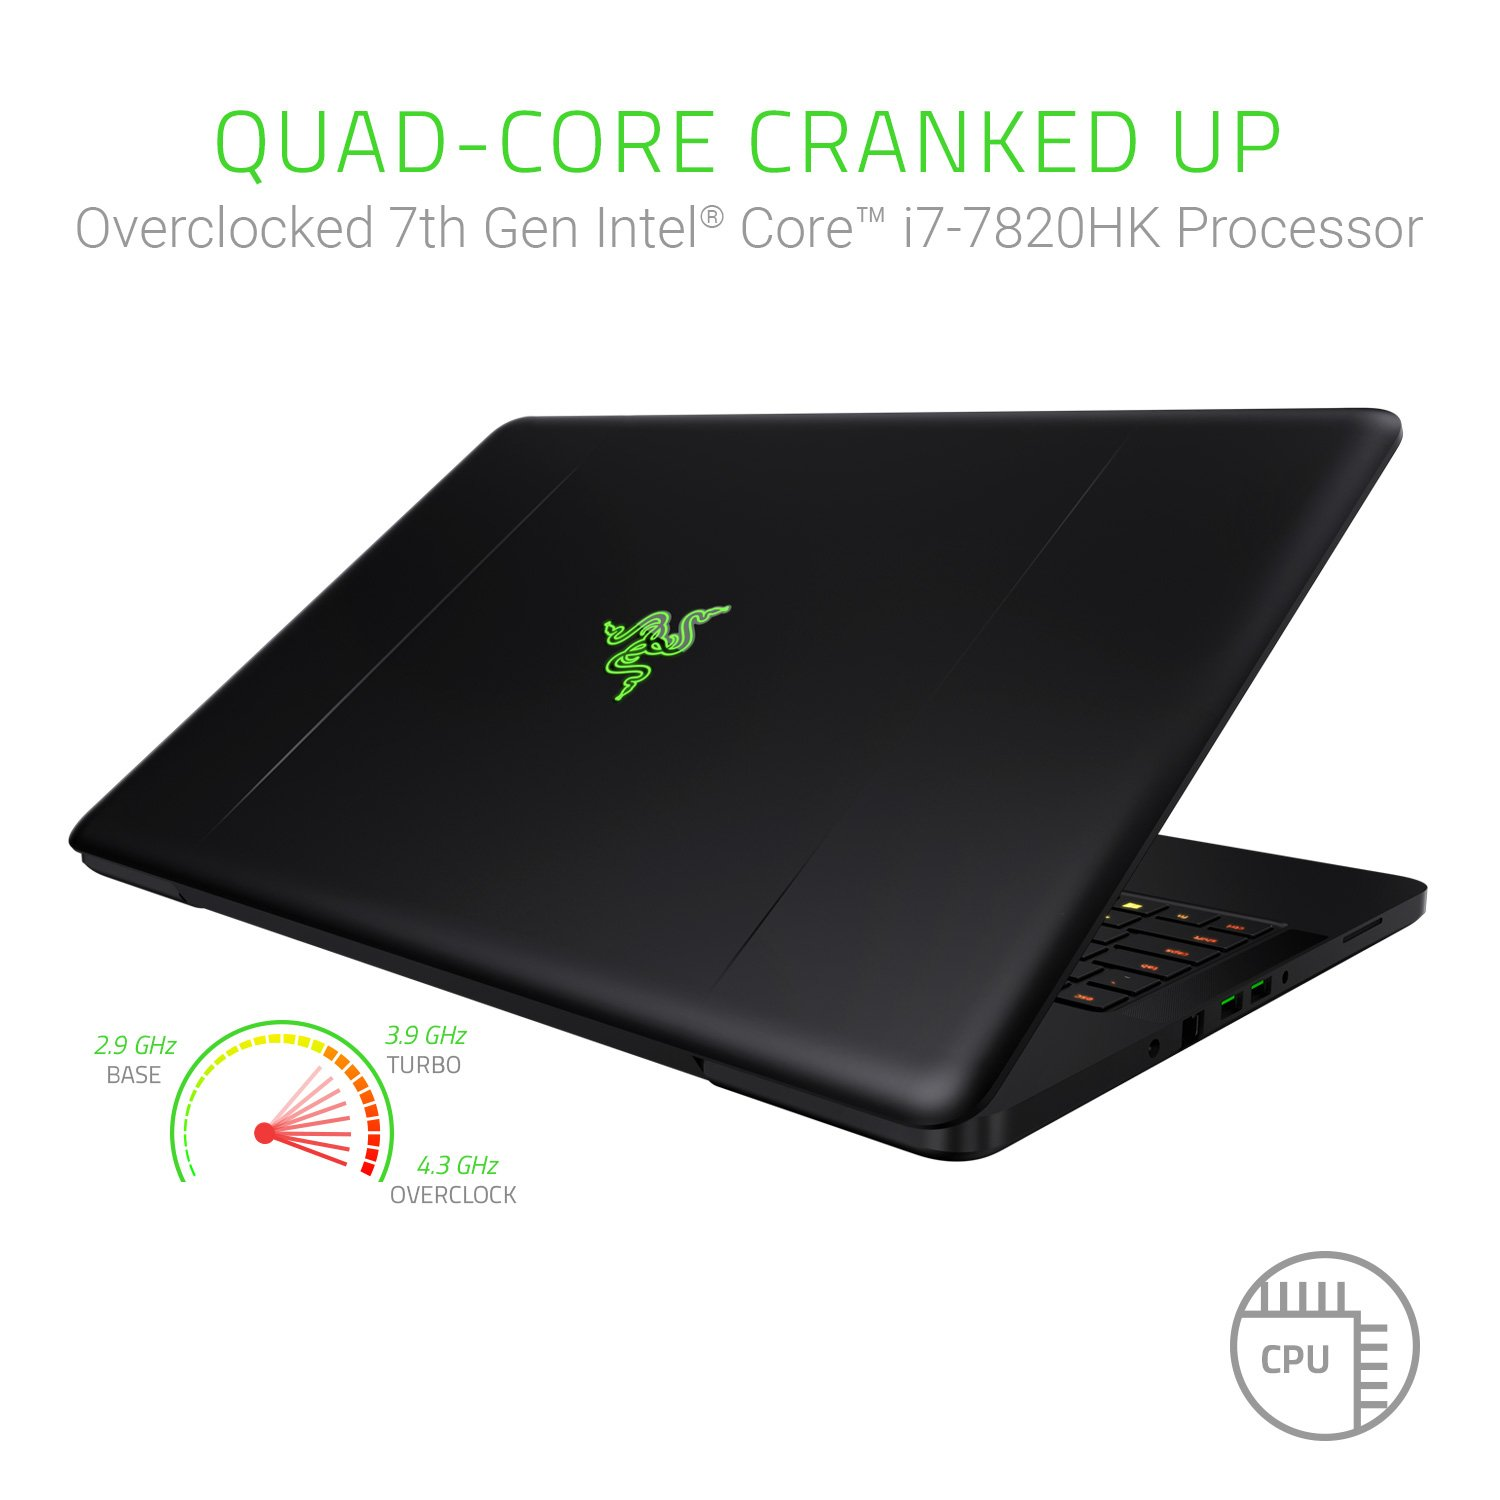 Razer Blade Pro 17: Gaming Laptop - 4K Touchscreen - ULP Mechanical  Keyboard - Intel Quad-Core Overclocked i7-7820HK - NVIDIA GeForce GTX 1080  – DDR4